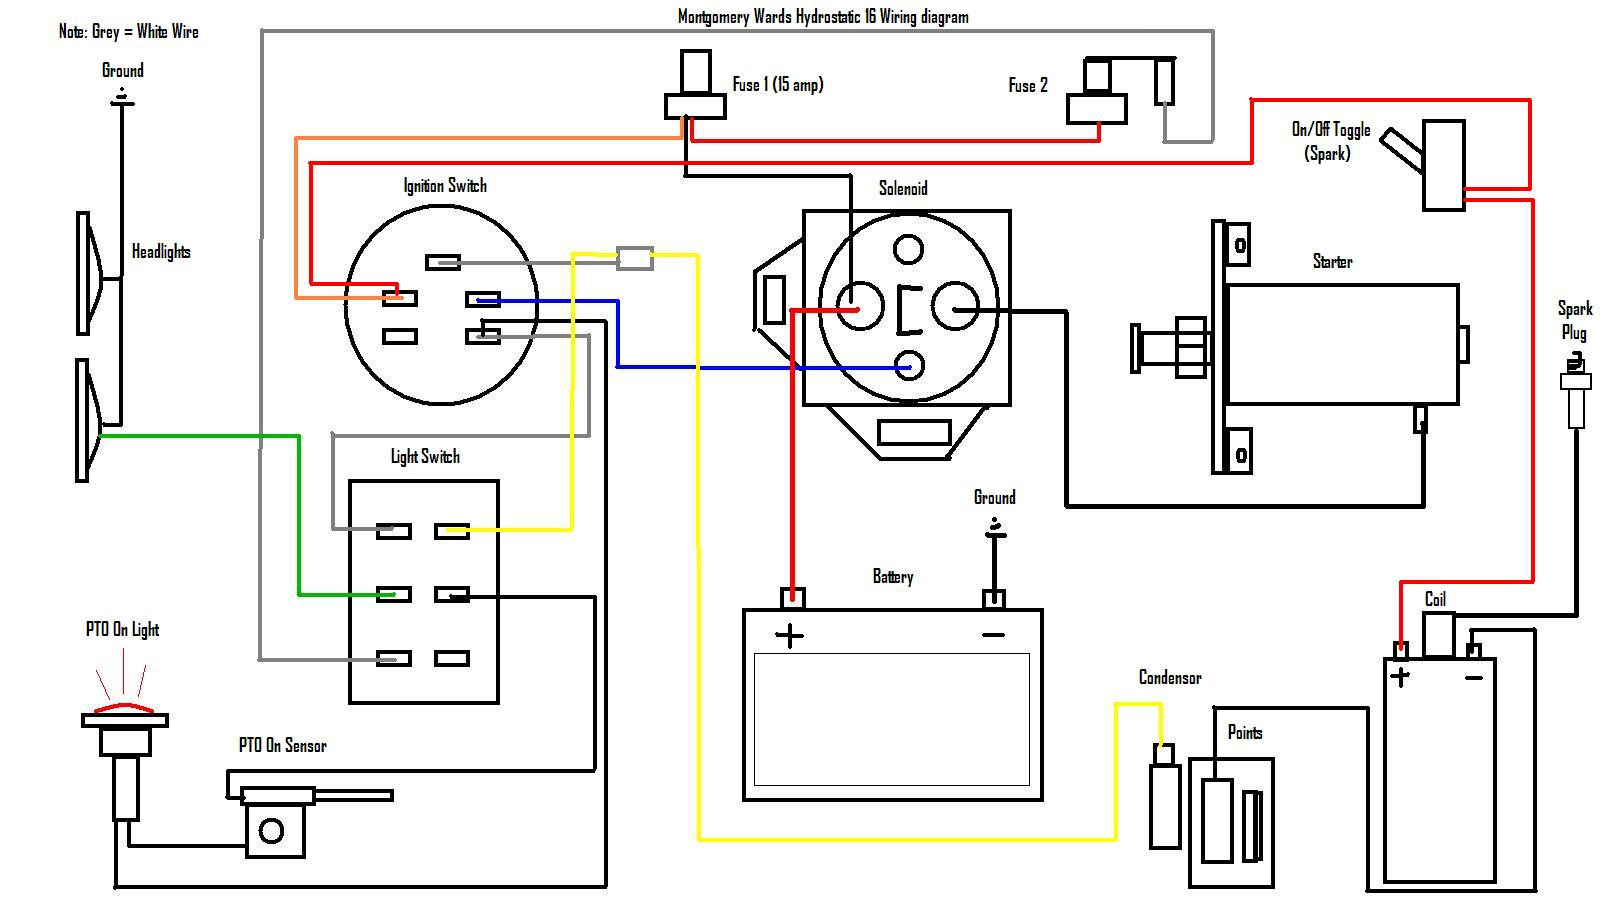 lawn tractor l130 wiring diagram lawn image wiring john deere l130 wiring diagram wiring diagram and hernes on lawn tractor l130 wiring diagram